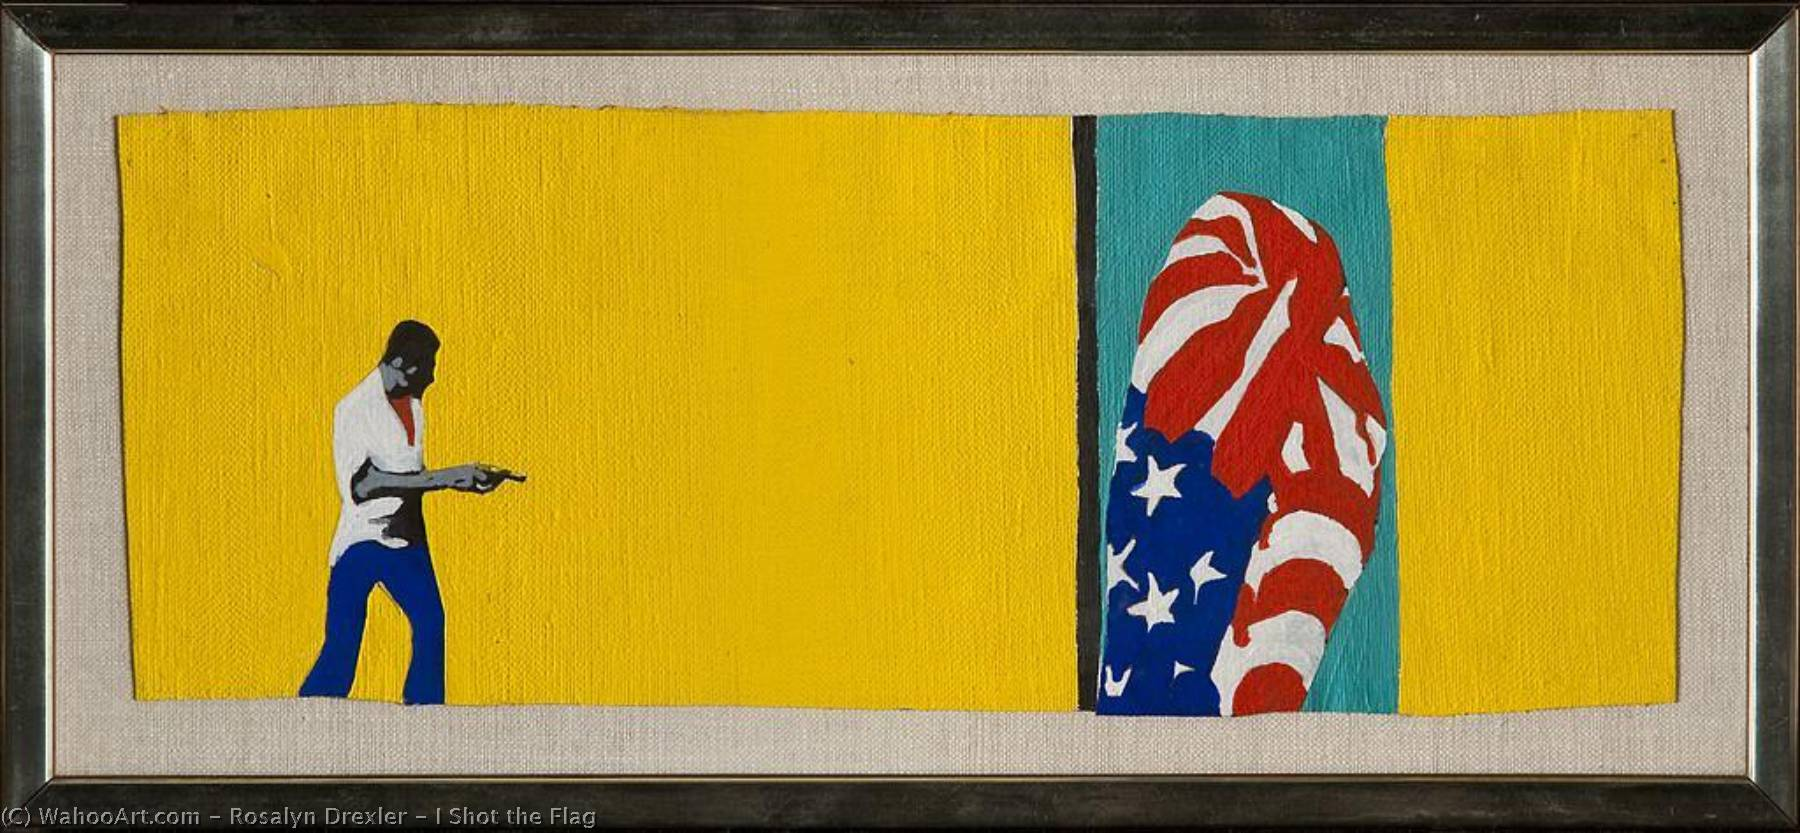 I Shot the Flag, 1963 by Rosalyn Drexler | Museum Quality Reproductions | WahooArt.com